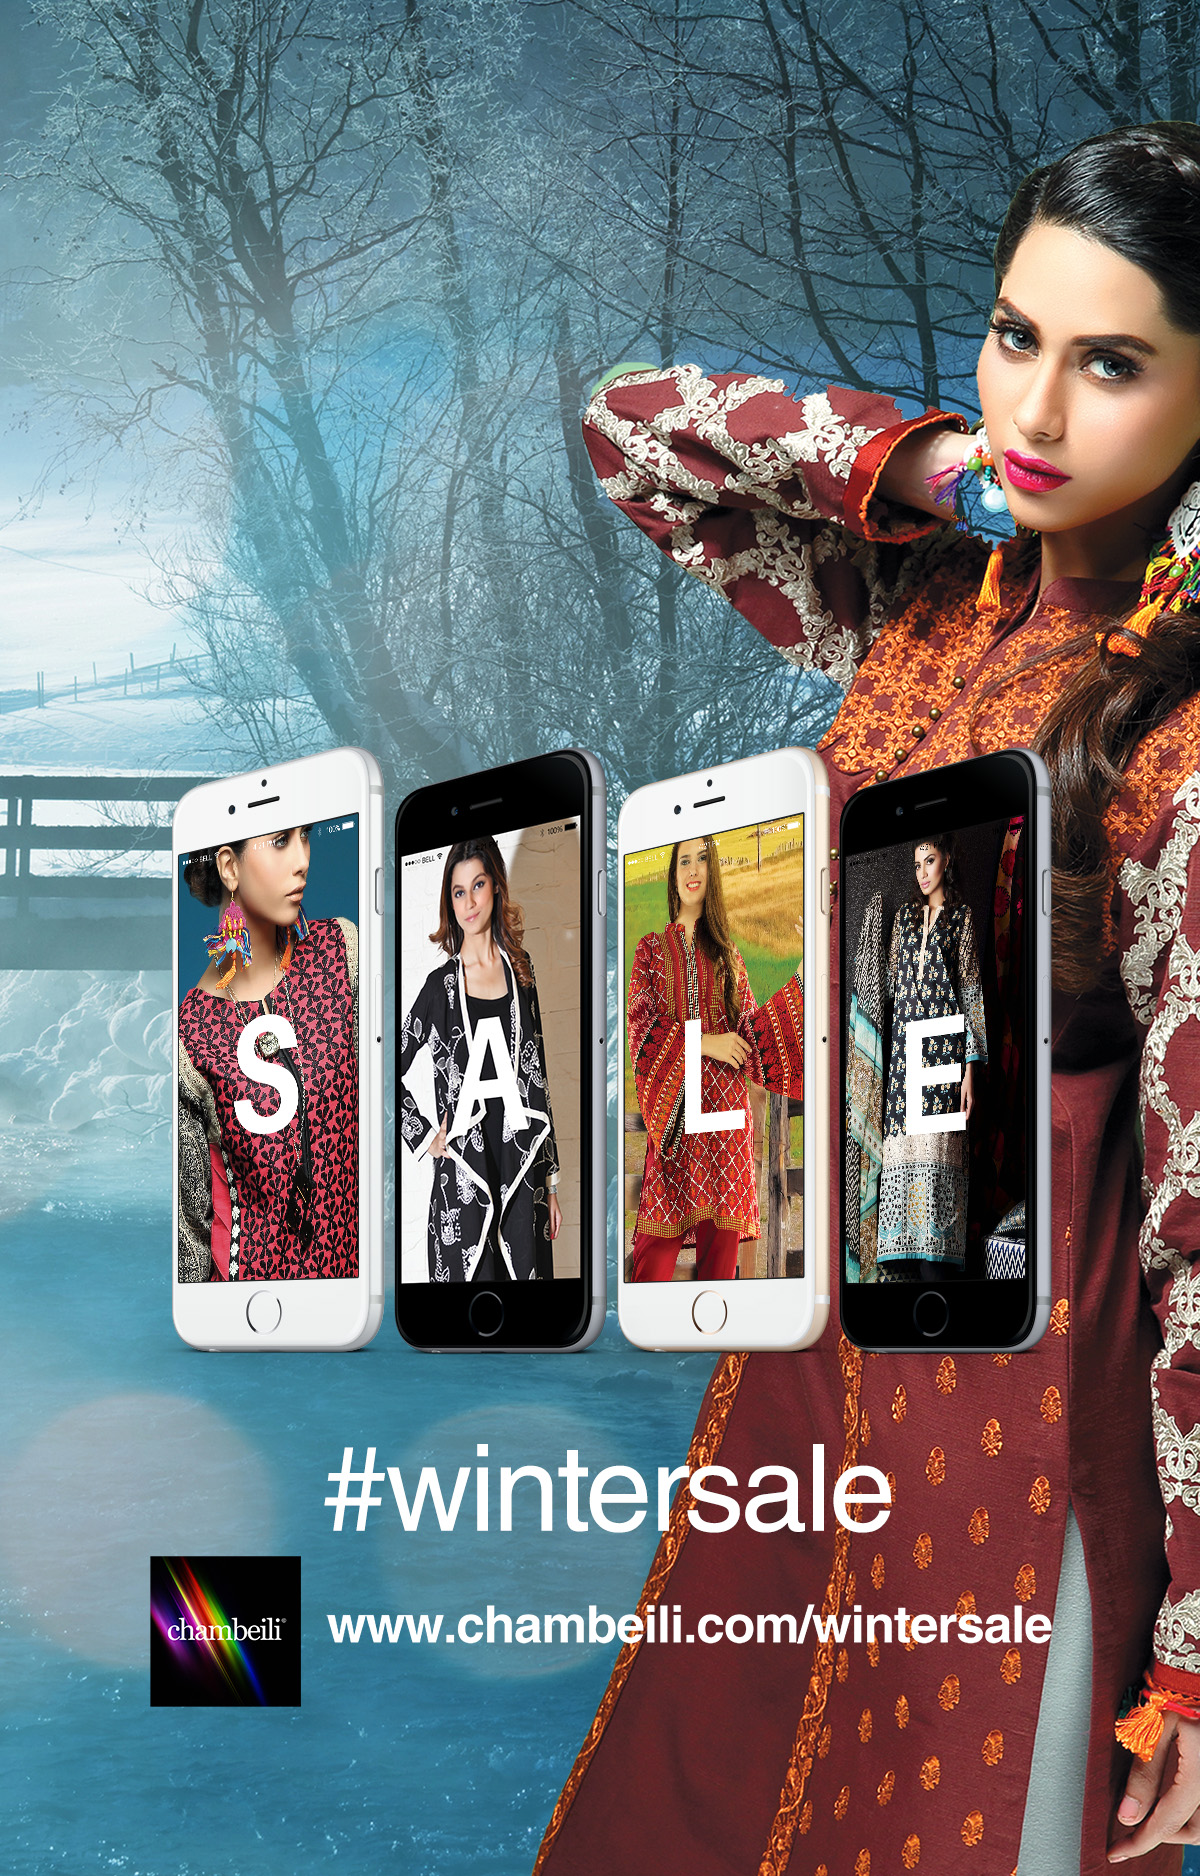 chambeili® Winter Sale 2015